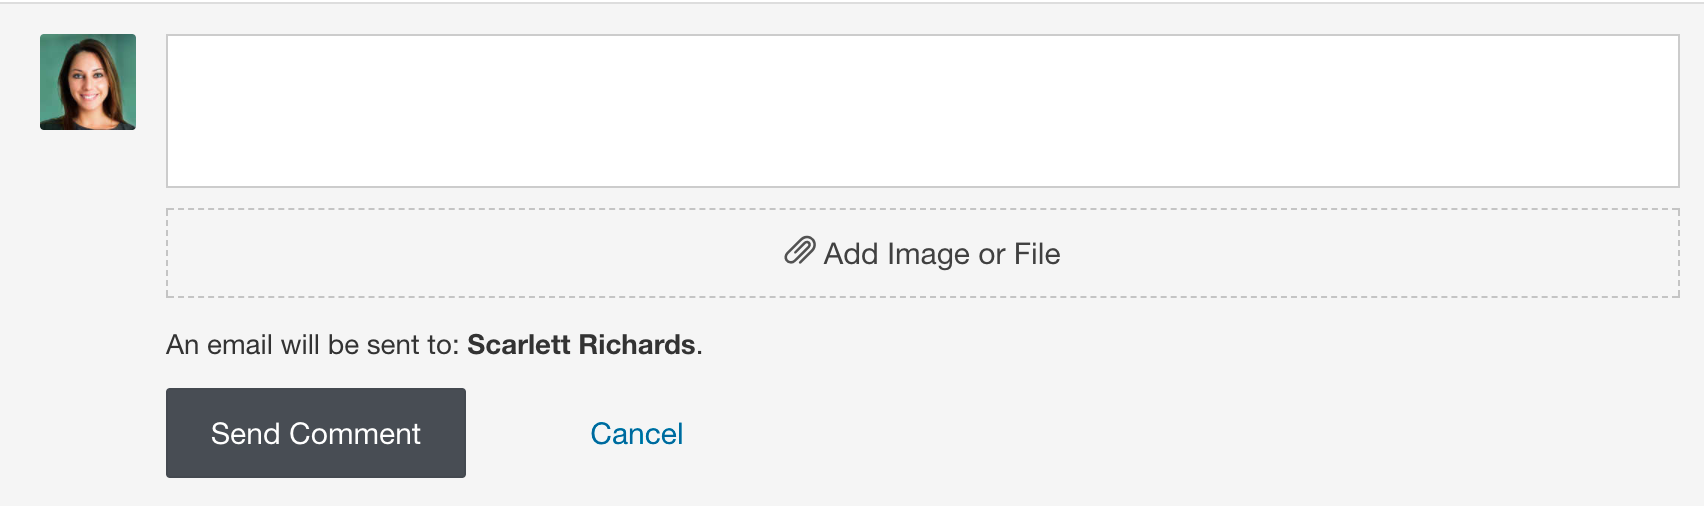 Attach an Image or File